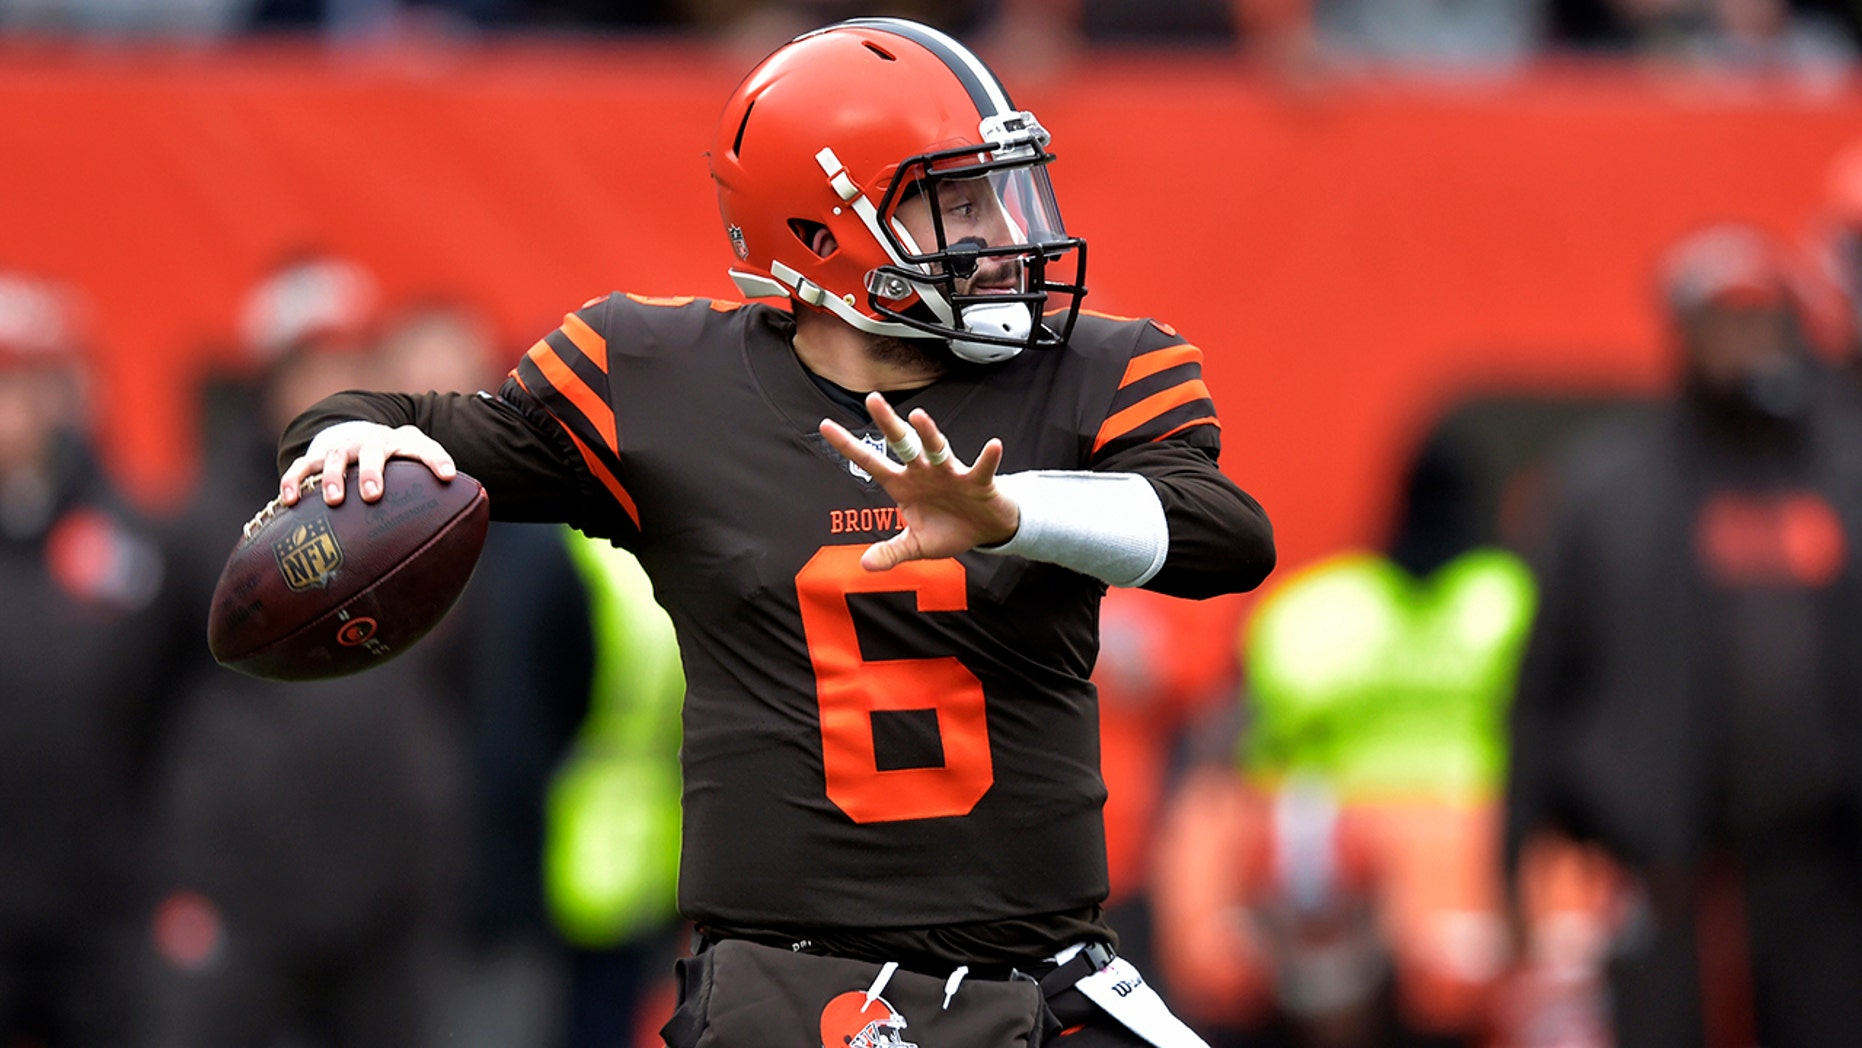 Cleveland Browns quarterback Baker Mayfield throws during the first half of an NFL football game against the Cincinnati Bengals on Sunday, Dec. 23, 2018, in Cleveland.